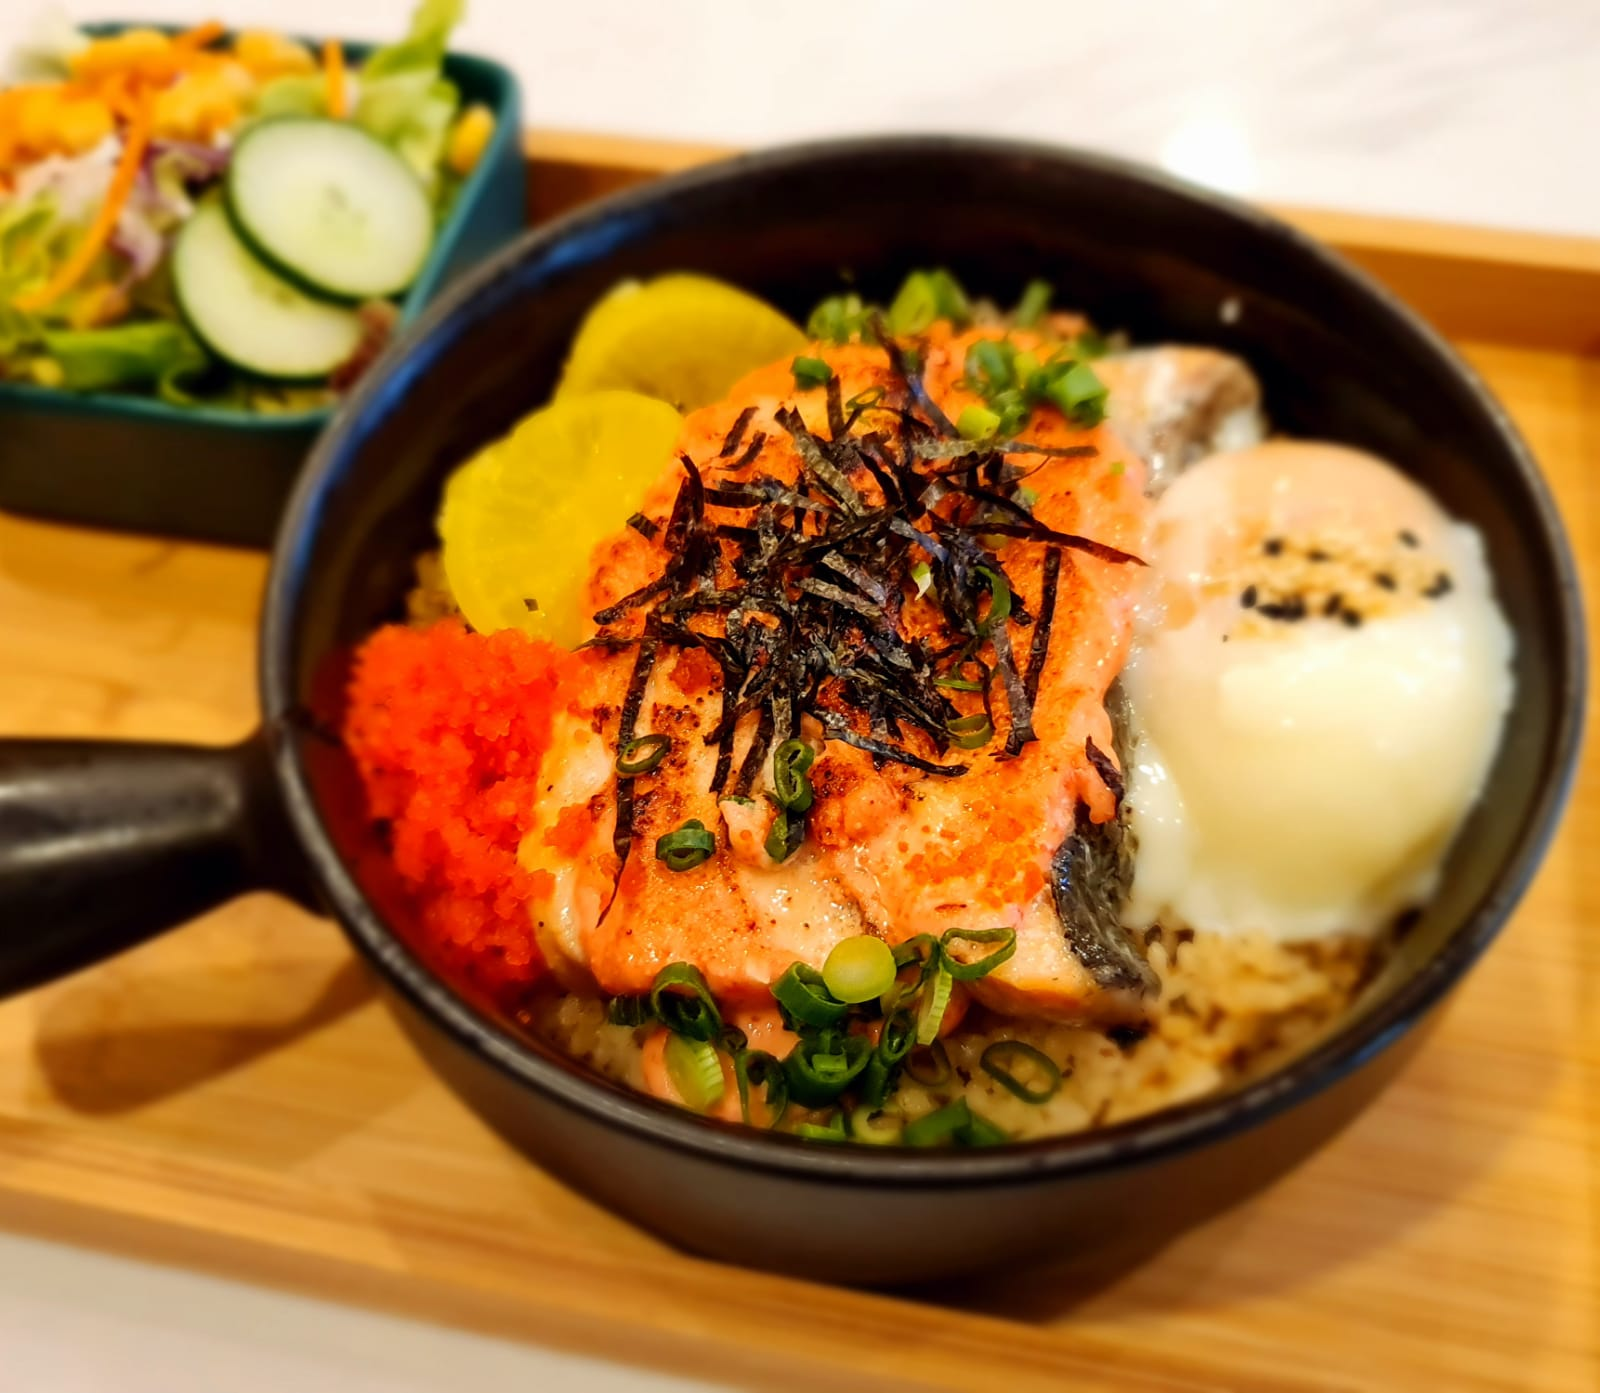 30% Discount on Lunch Bowl